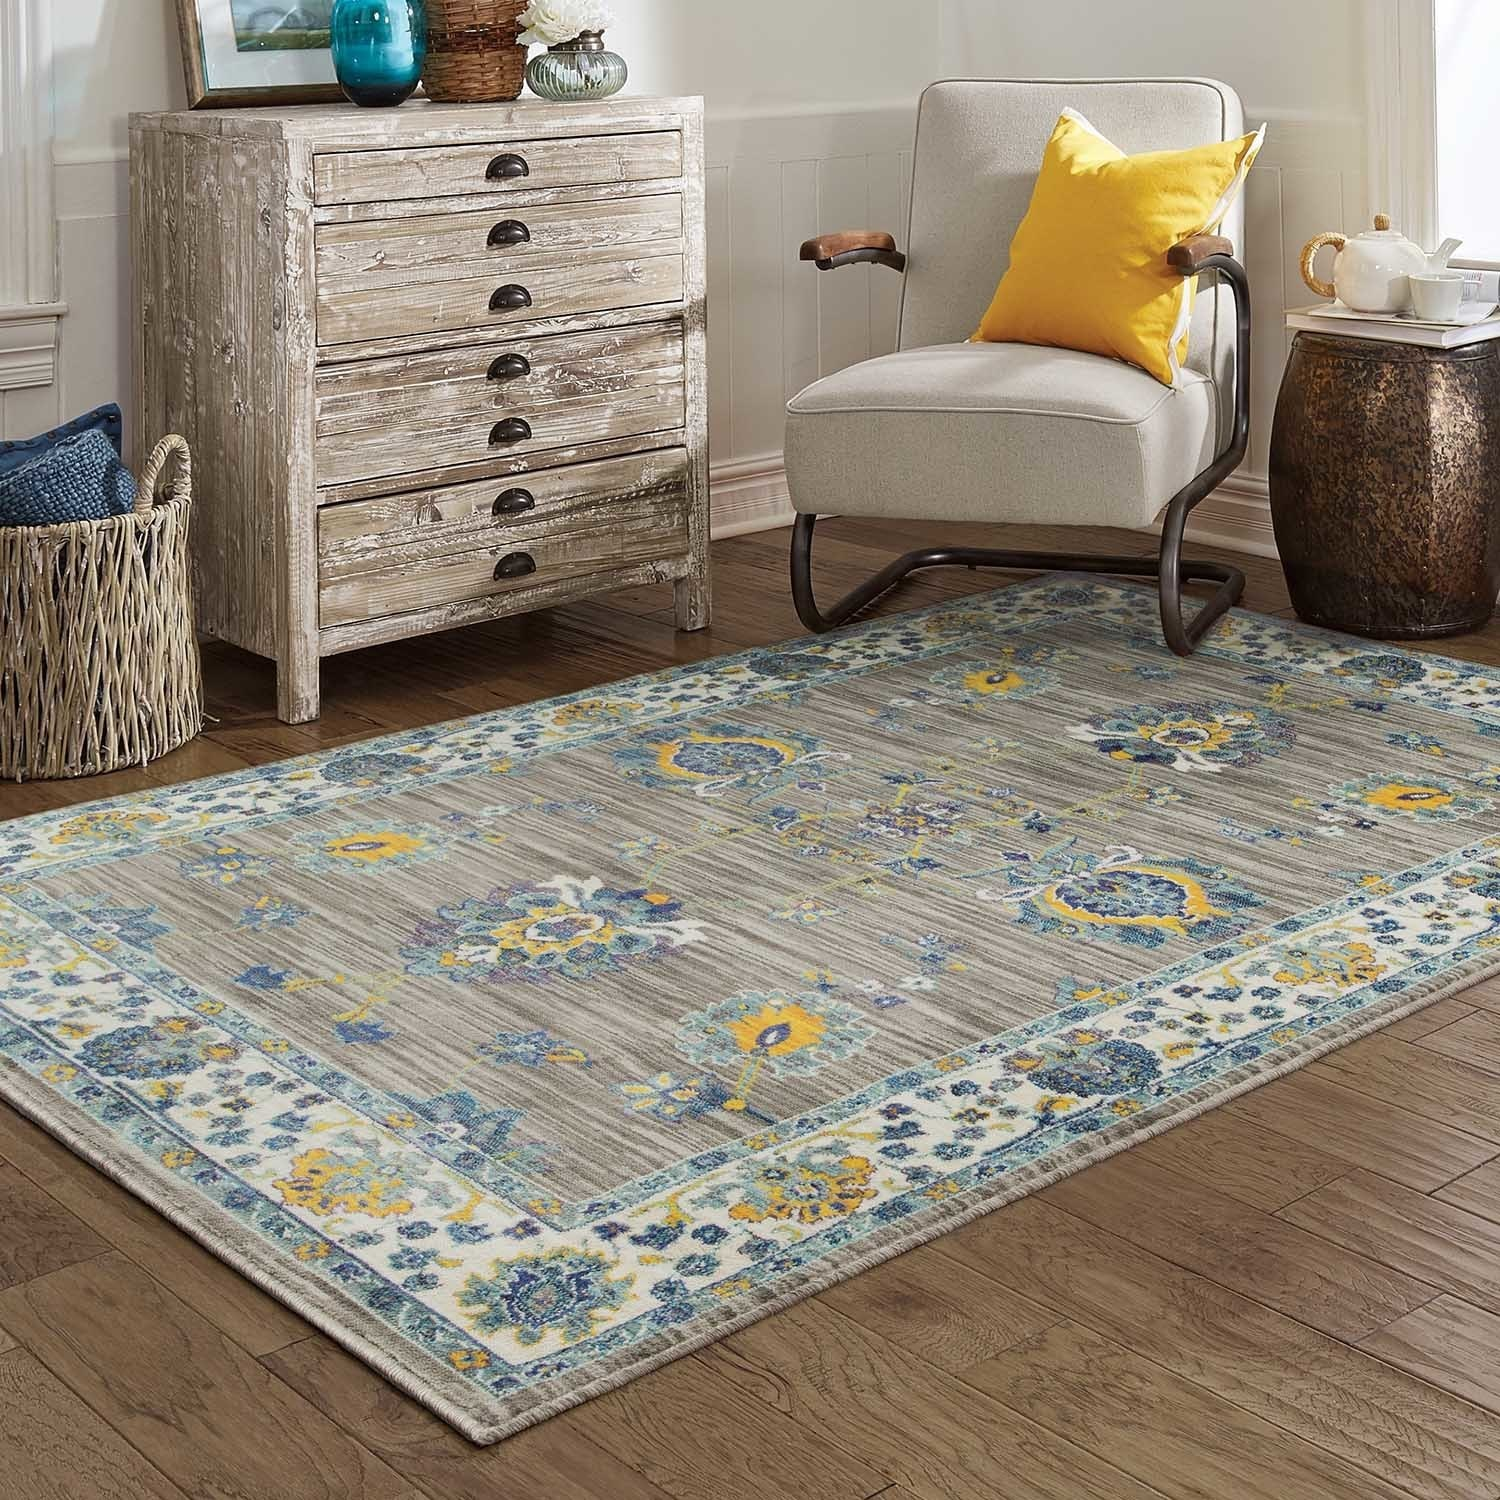 Distressed Traditional Grey Yellow Area Rug 5 3 x 7 6 Free